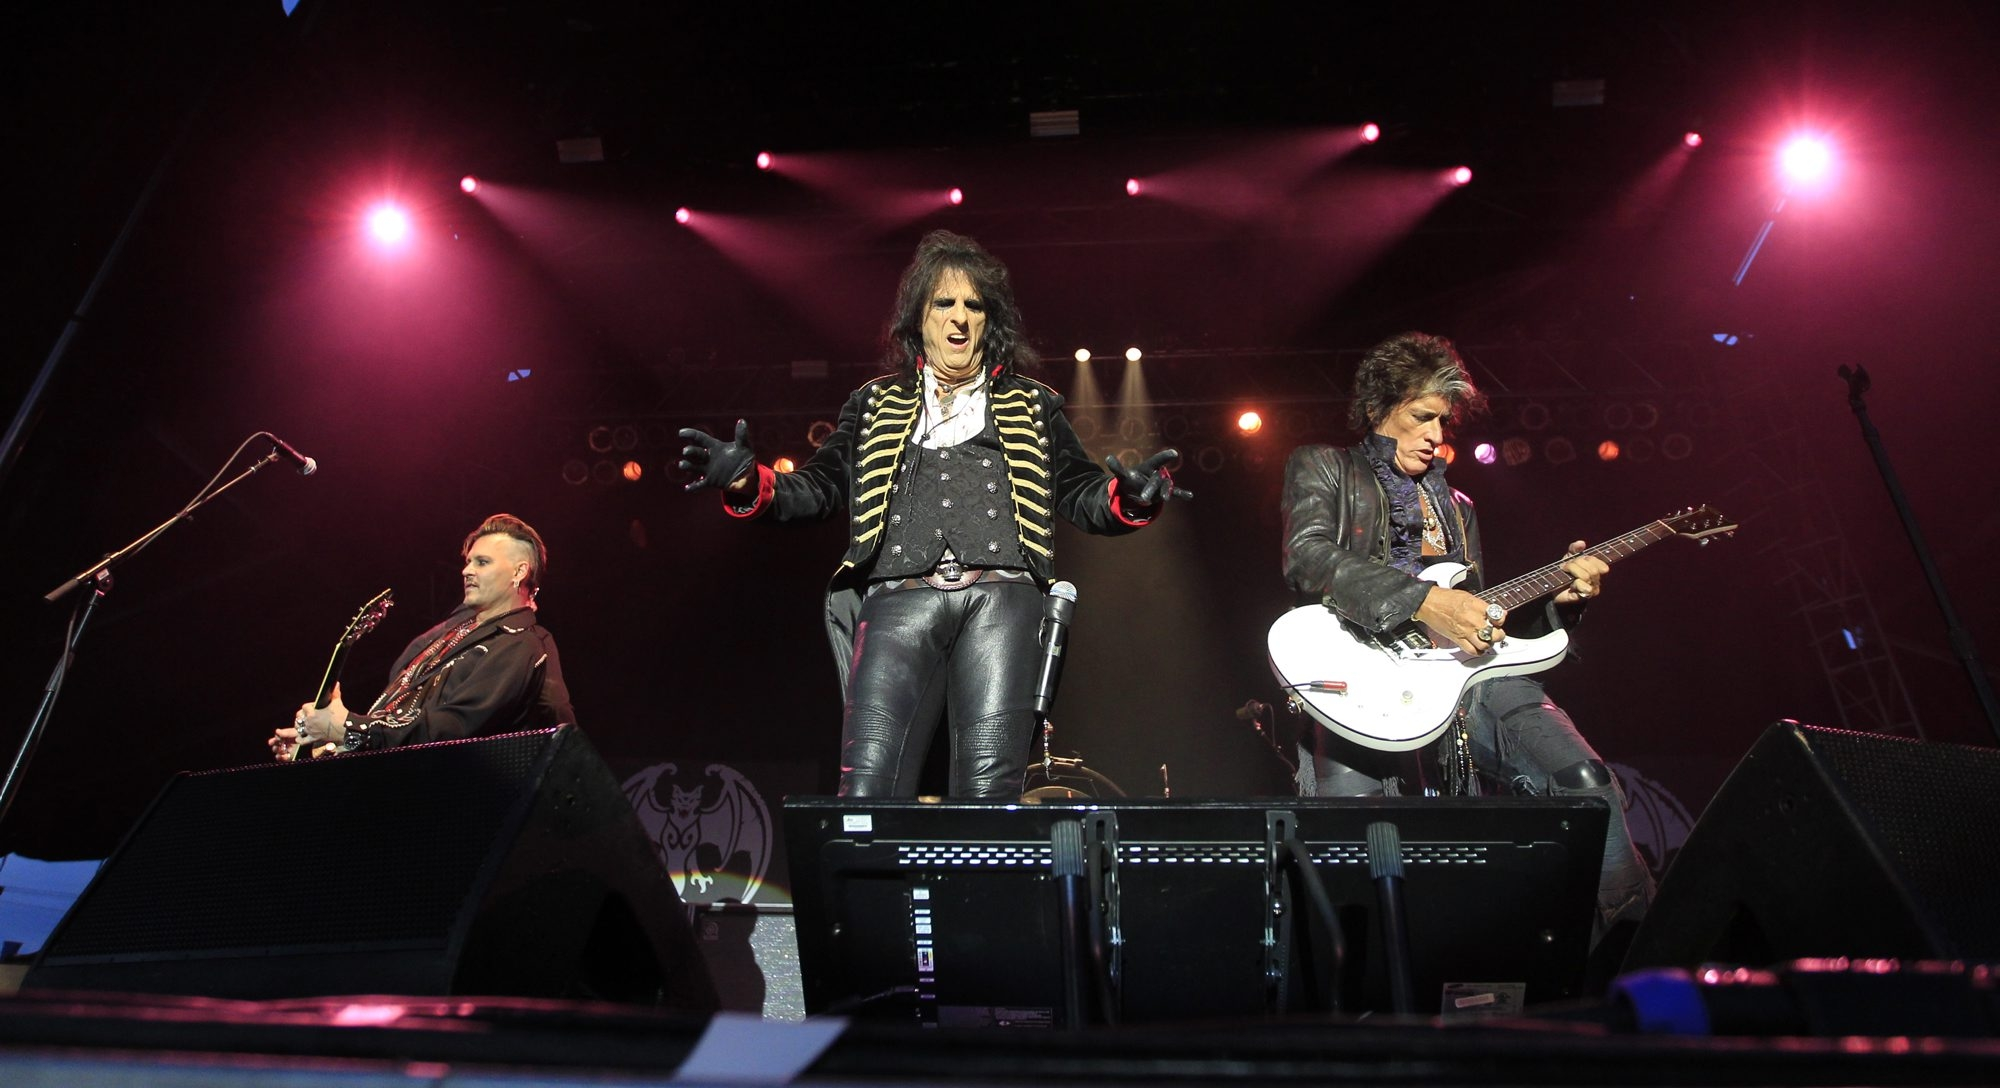 The Hollywood Vampires – from left, Johnny Depp, Alice Cooper and Joe Perry – command a menacing presence on a stage in the parking lot of Niagara Falls' Seneca Niagara Casino on Saturday night. The much-anticipated appearance by the musical amalgam of Hollywood and rock-and-roll was delayed a bit by rain.